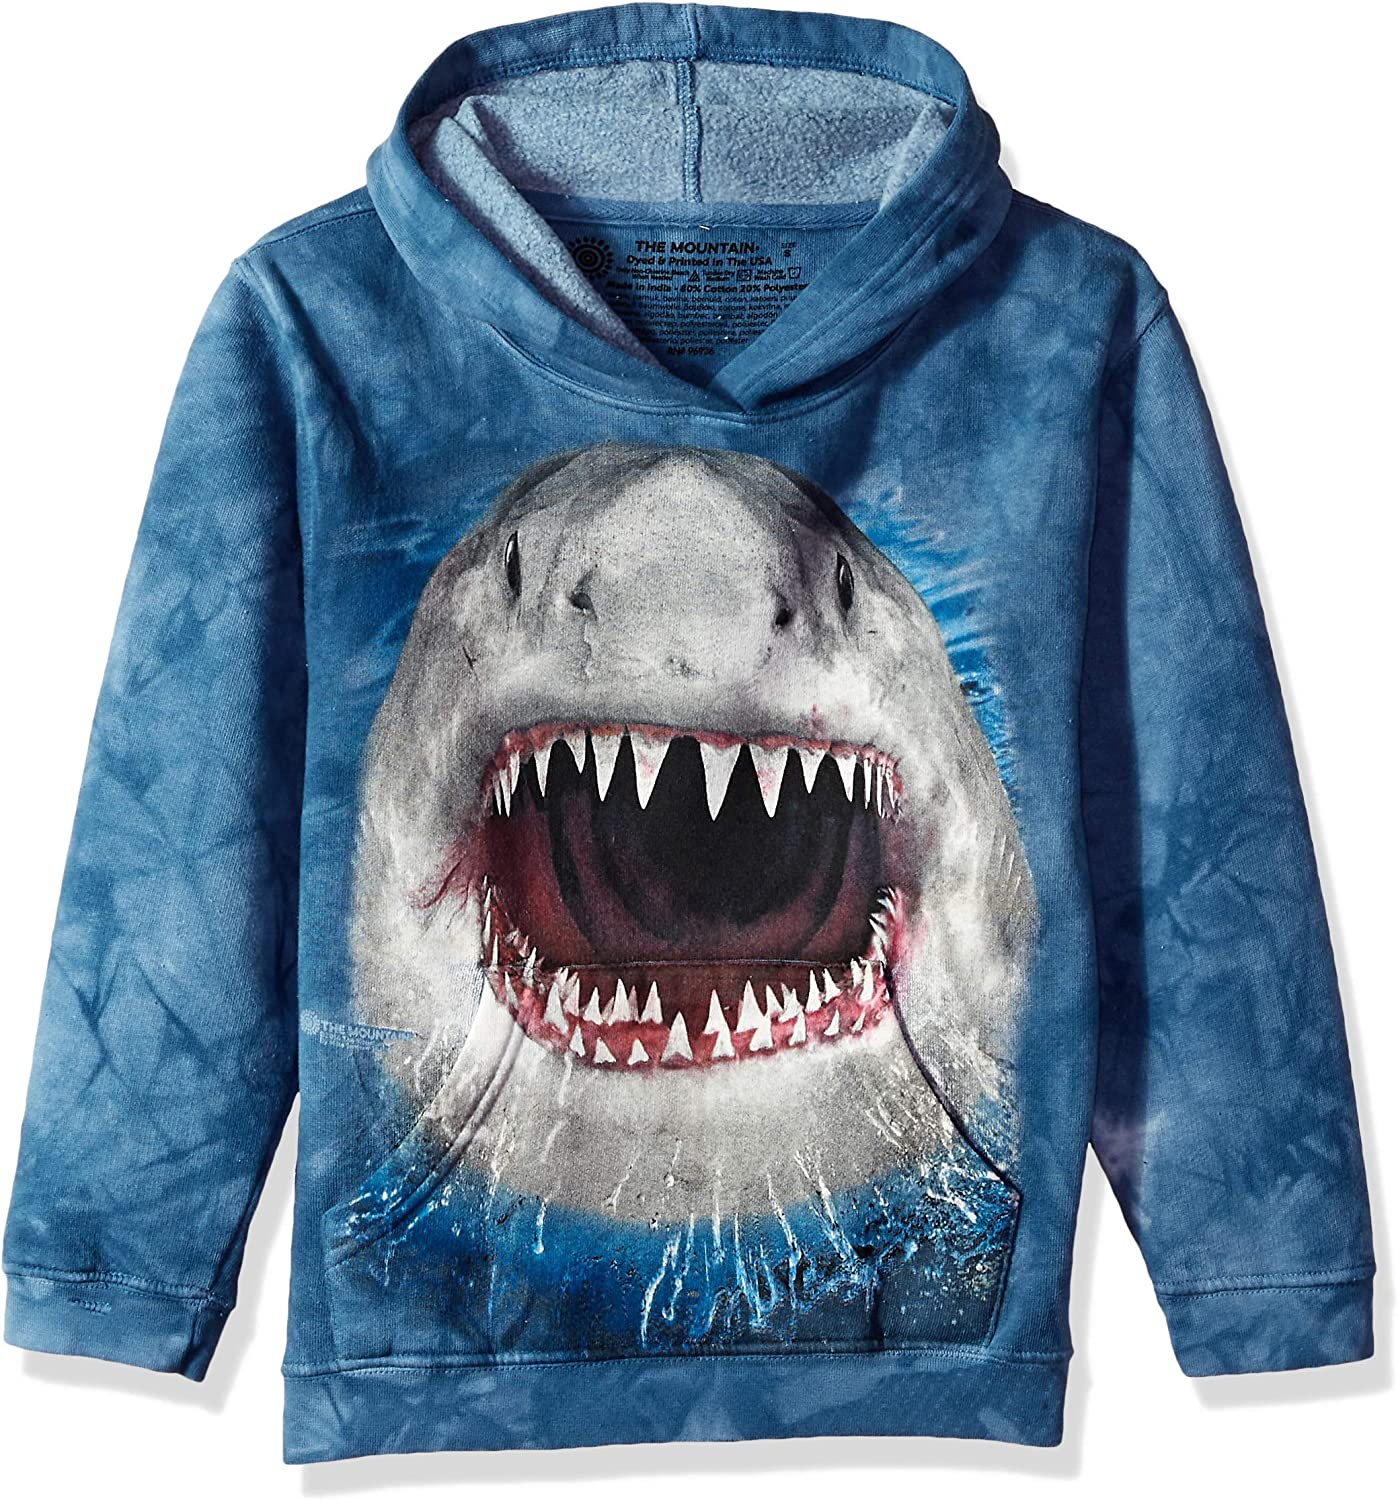 The Mountain Big Face Wicked Nasty Shark Hoodie – Long Sleeve, Child, Unisex - Blue